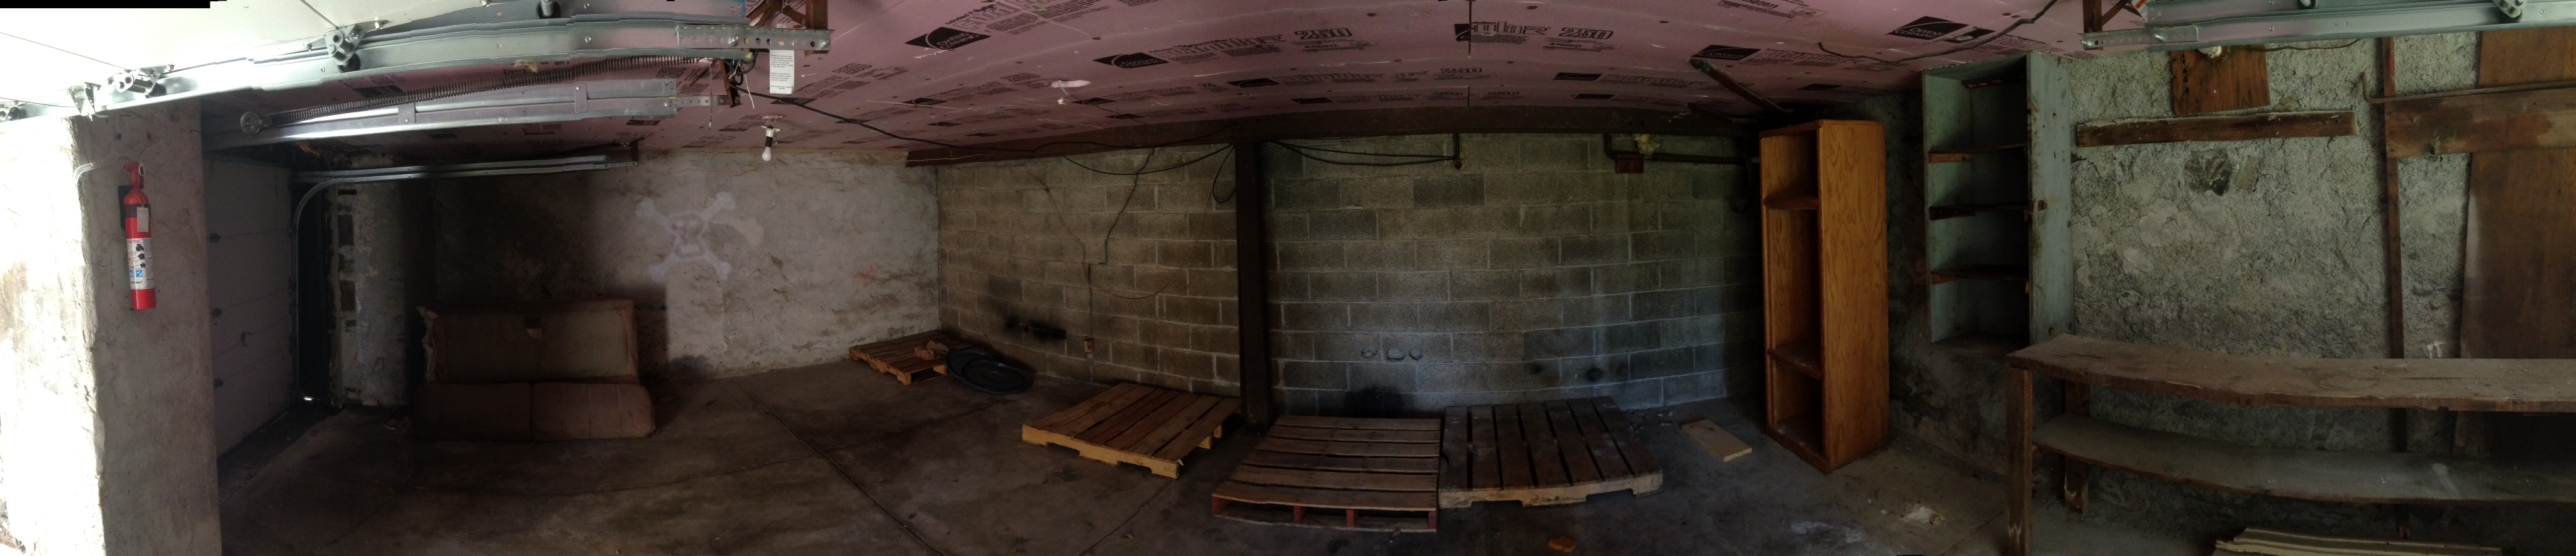 3983 – 3985 Vernon panoramic photo of unfinished basement